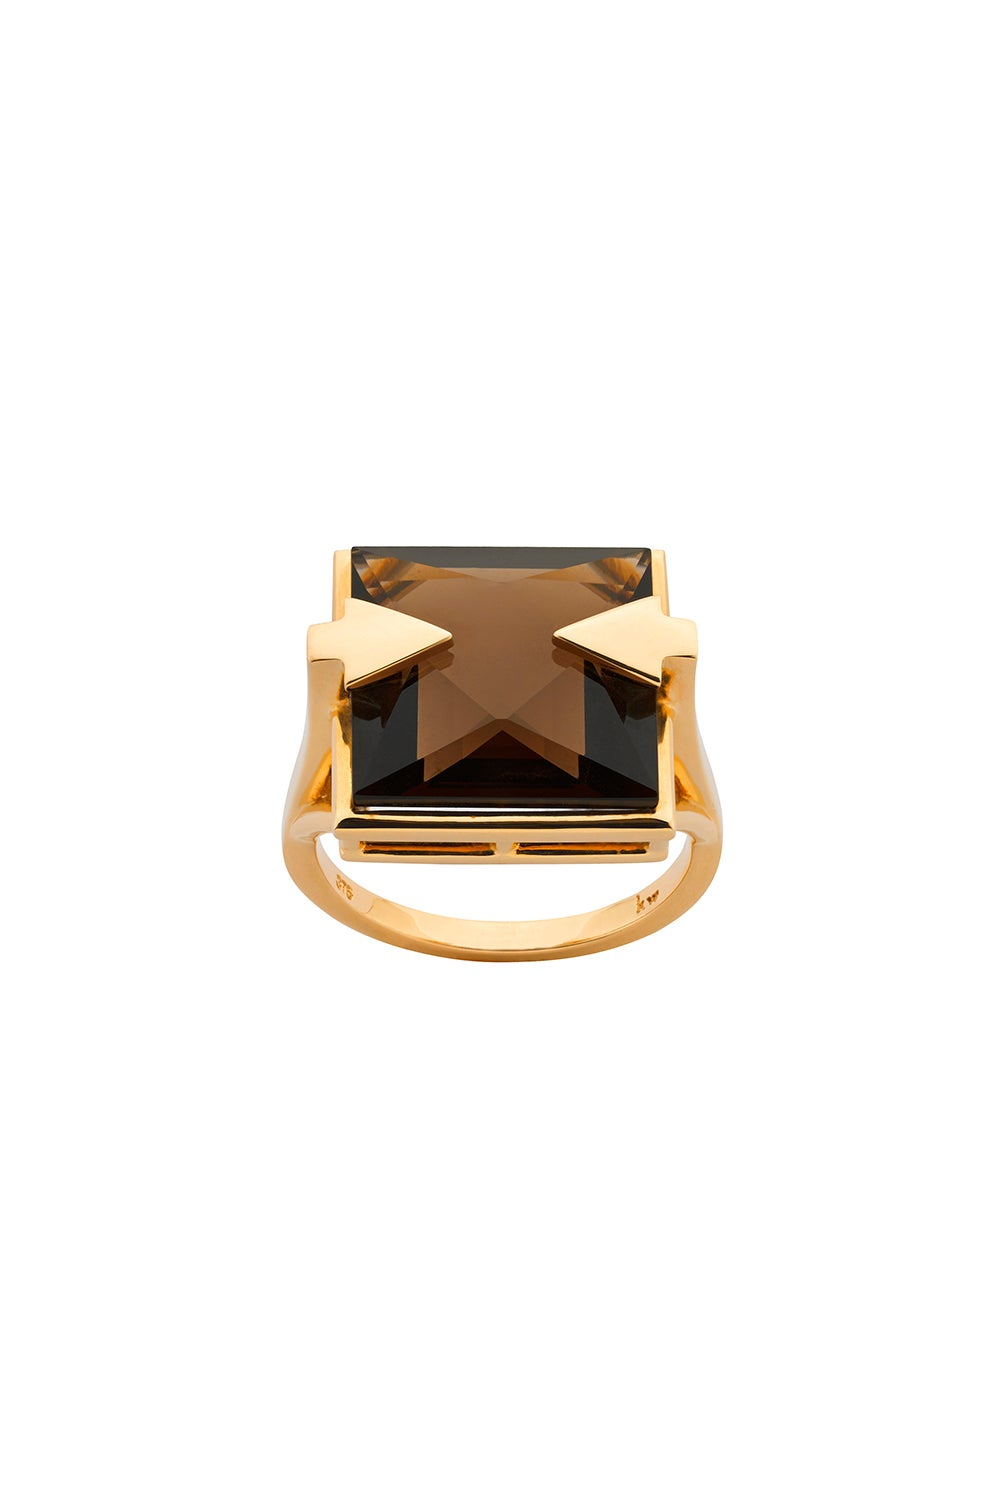 Ballistic Ring with 14mm Square Smoky Quartz Gold